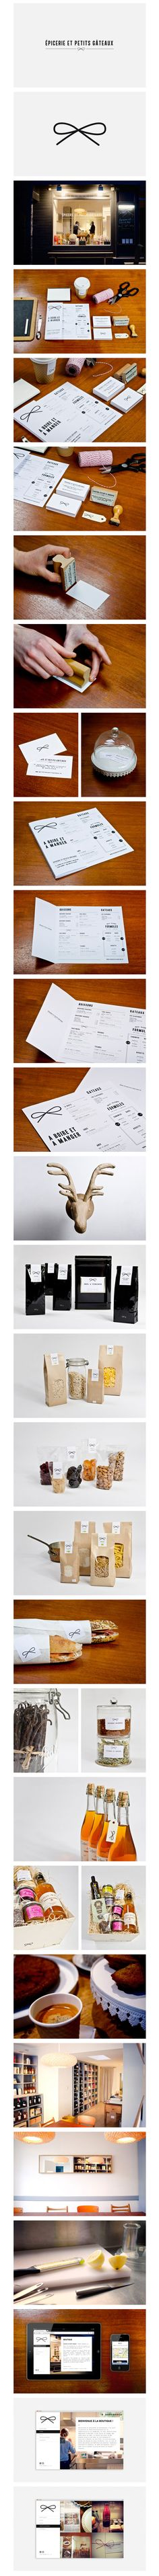 Epicerie et Petits Gâteaux | #stationary #corporate #design #corporatedesign #logo #identity #branding #marketing <<< repinned by an #advertising agency from #Hamburg / #Germany - www.BlickeDeeler.de